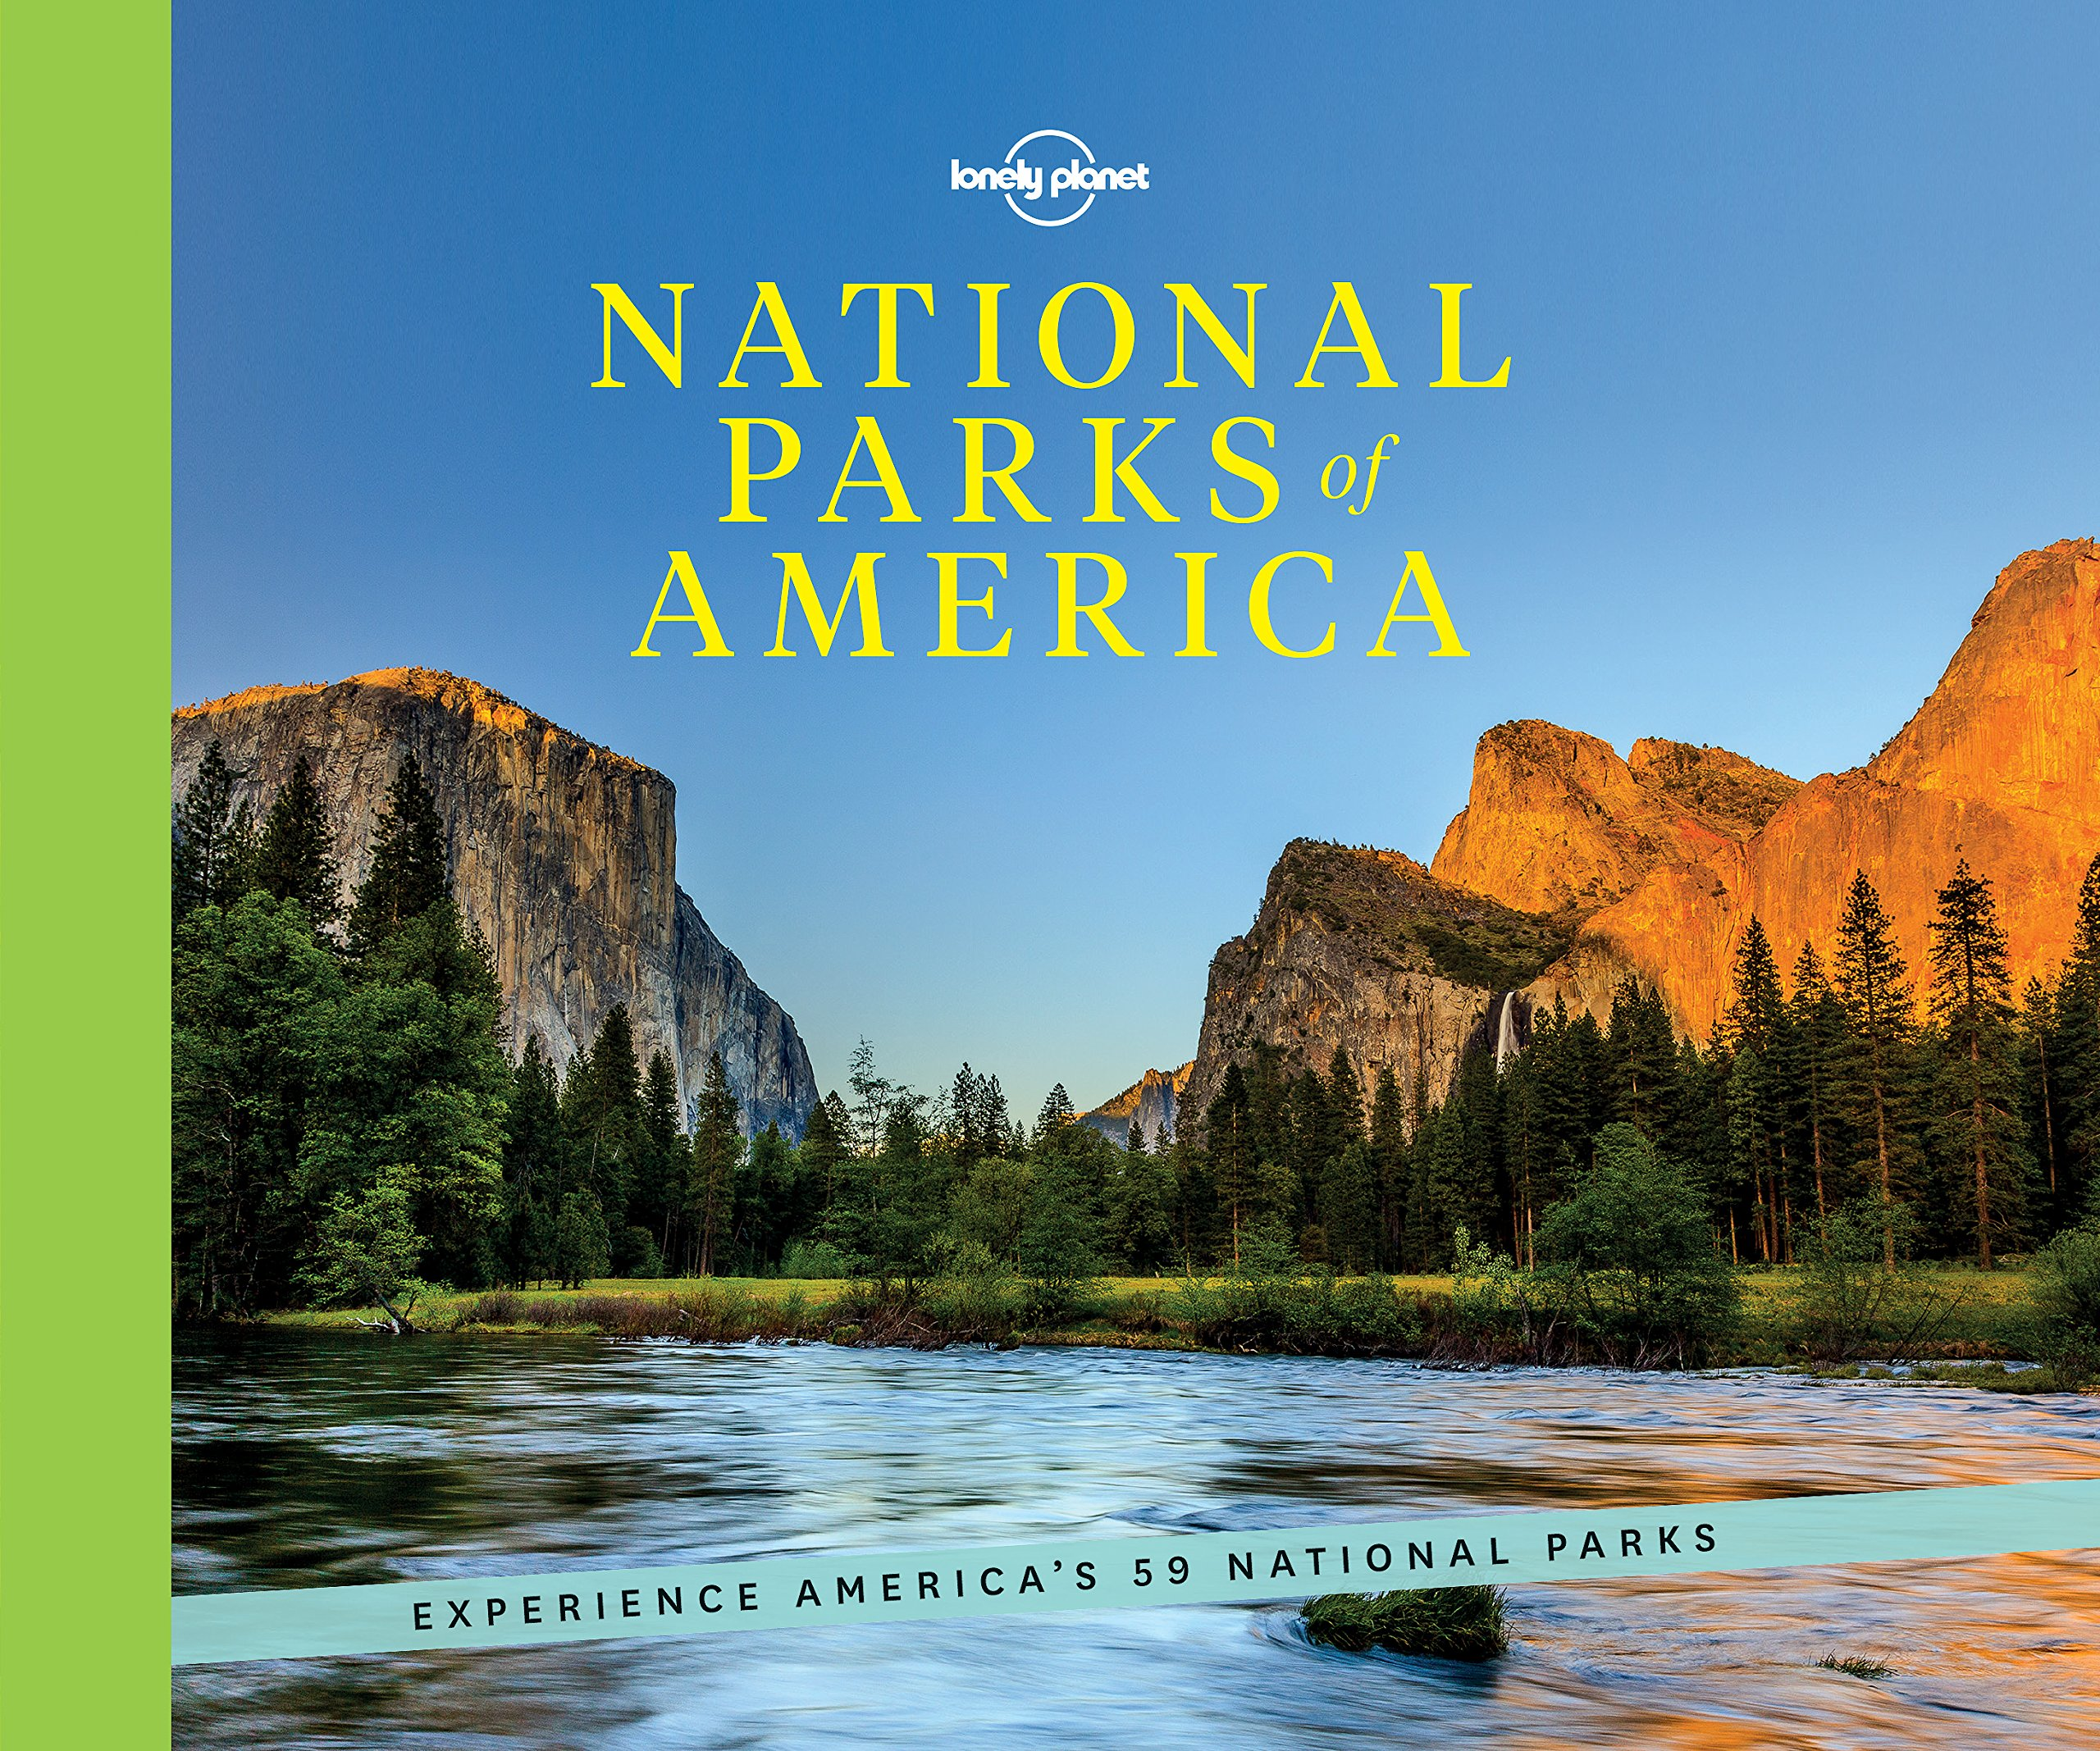 National Parks of America Experience America s 59 National Parks